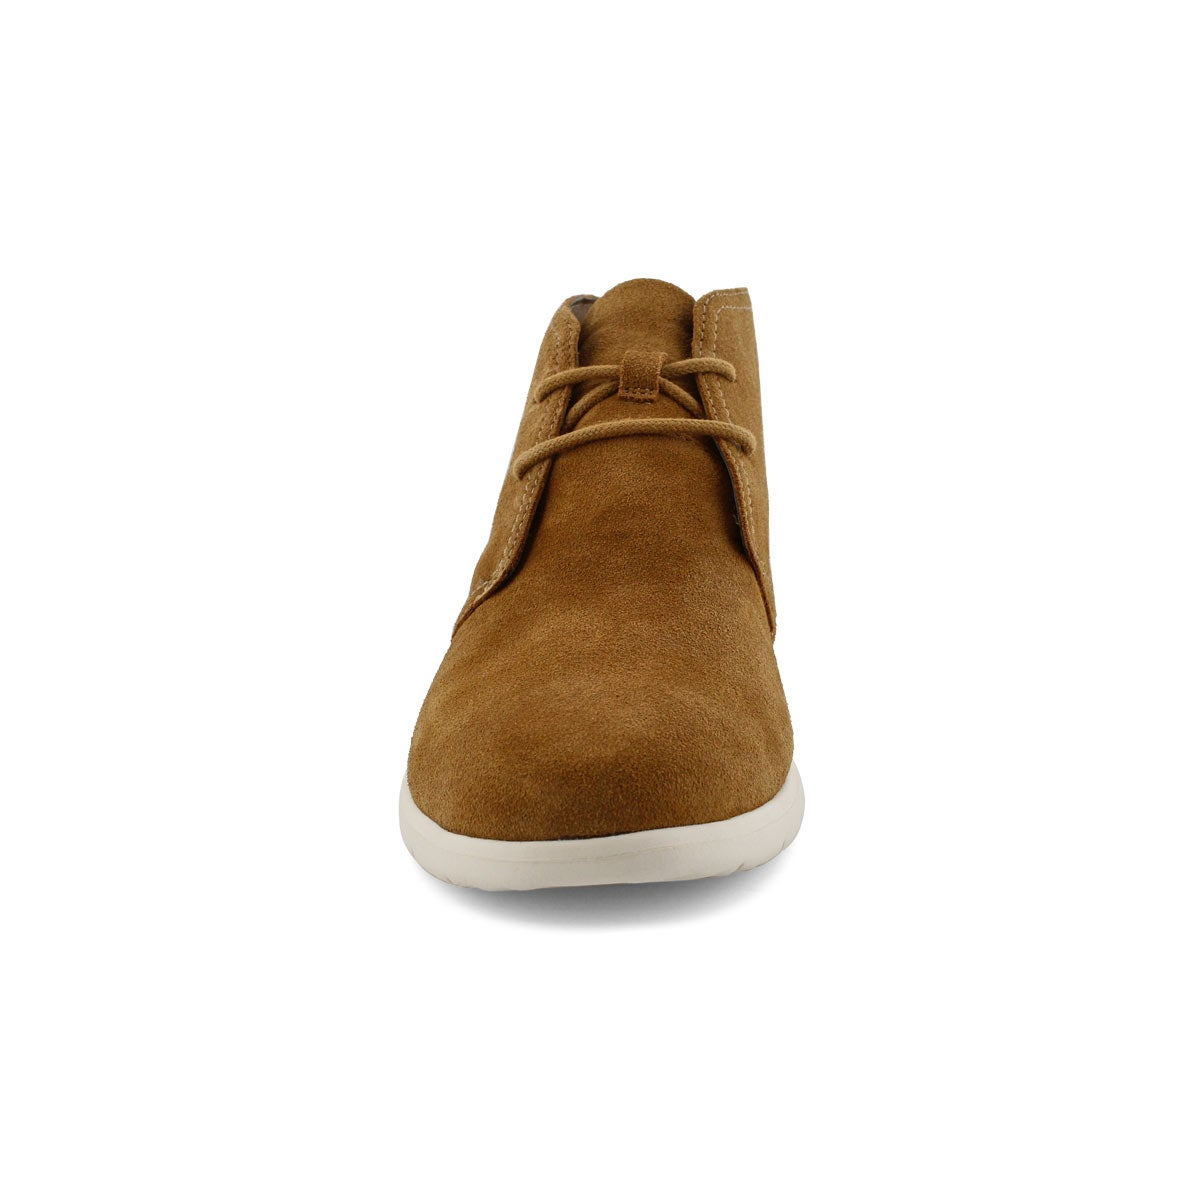 Mns Dustin chestnut chukka boot